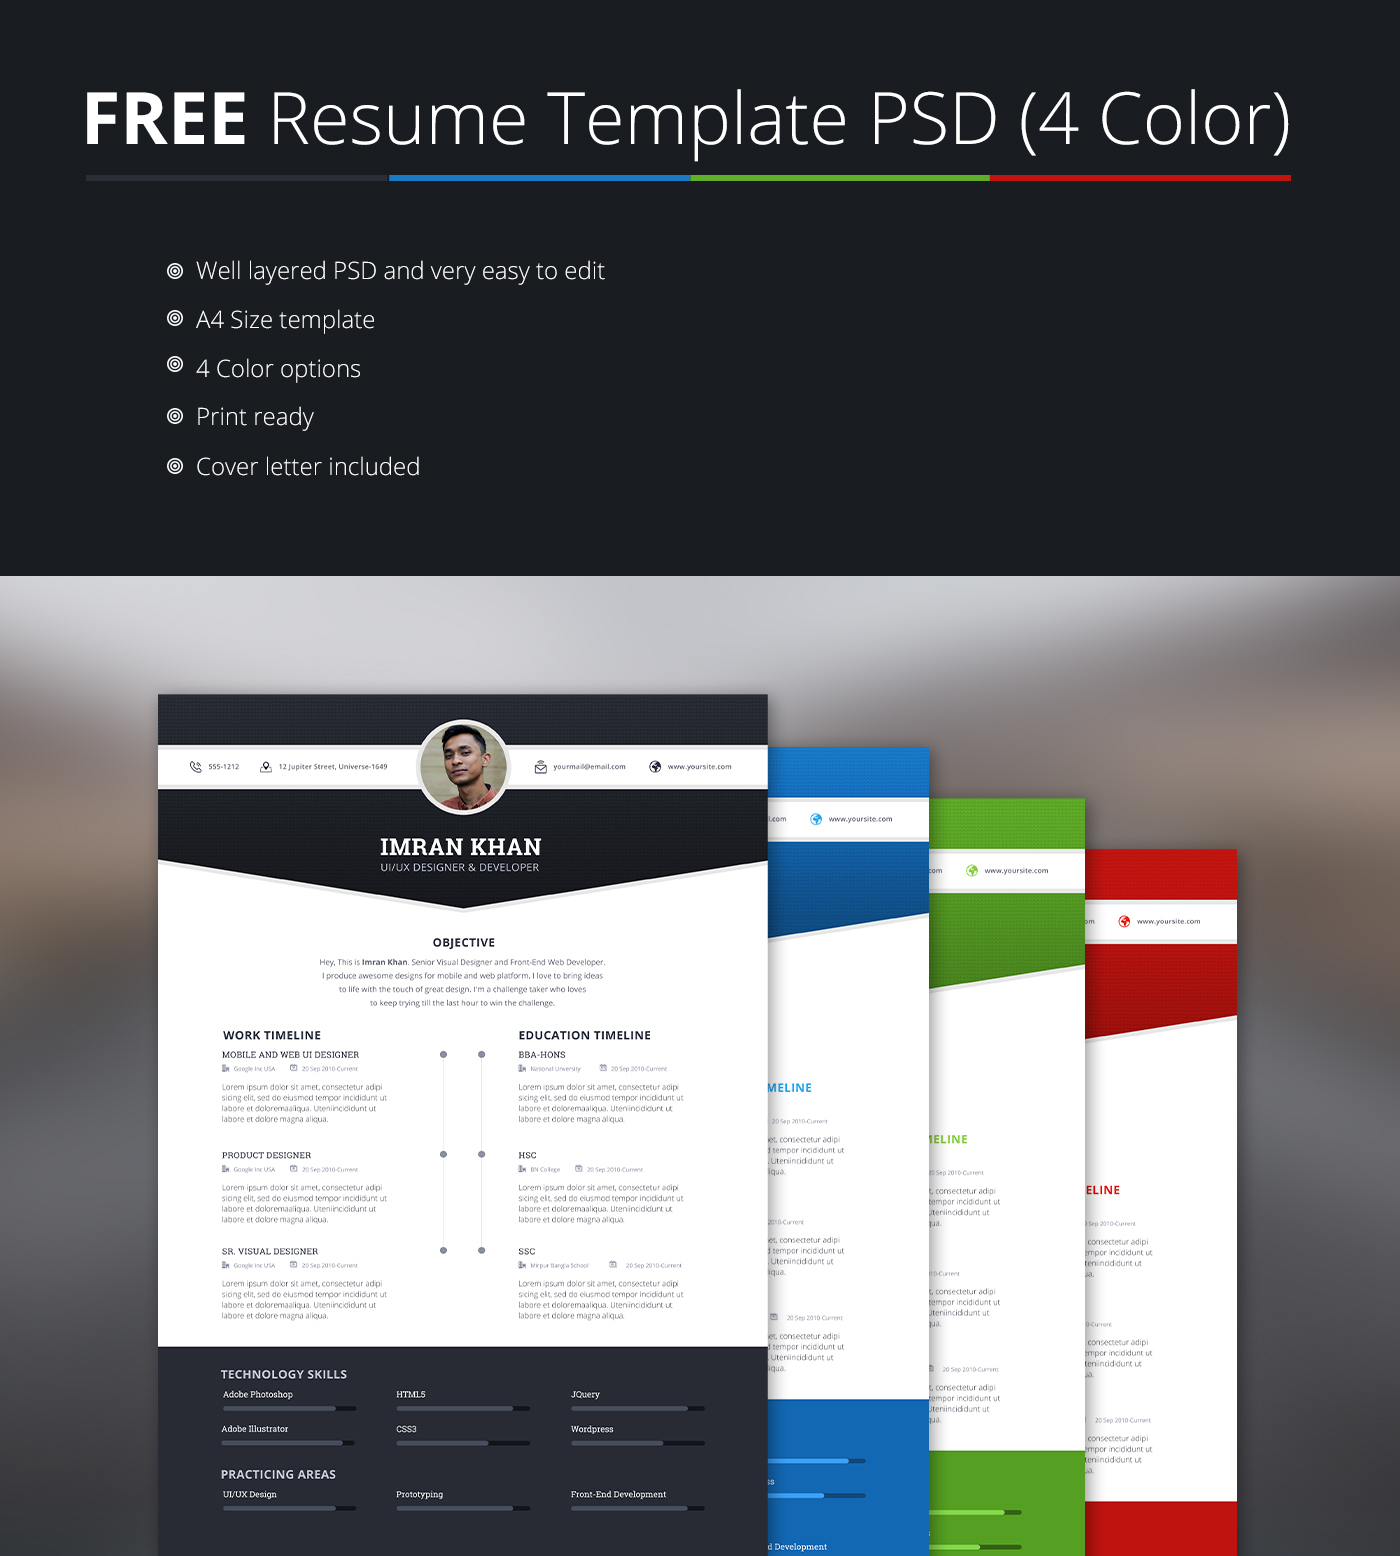 Free resume template psd 4 colors on behance yelopaper Image collections